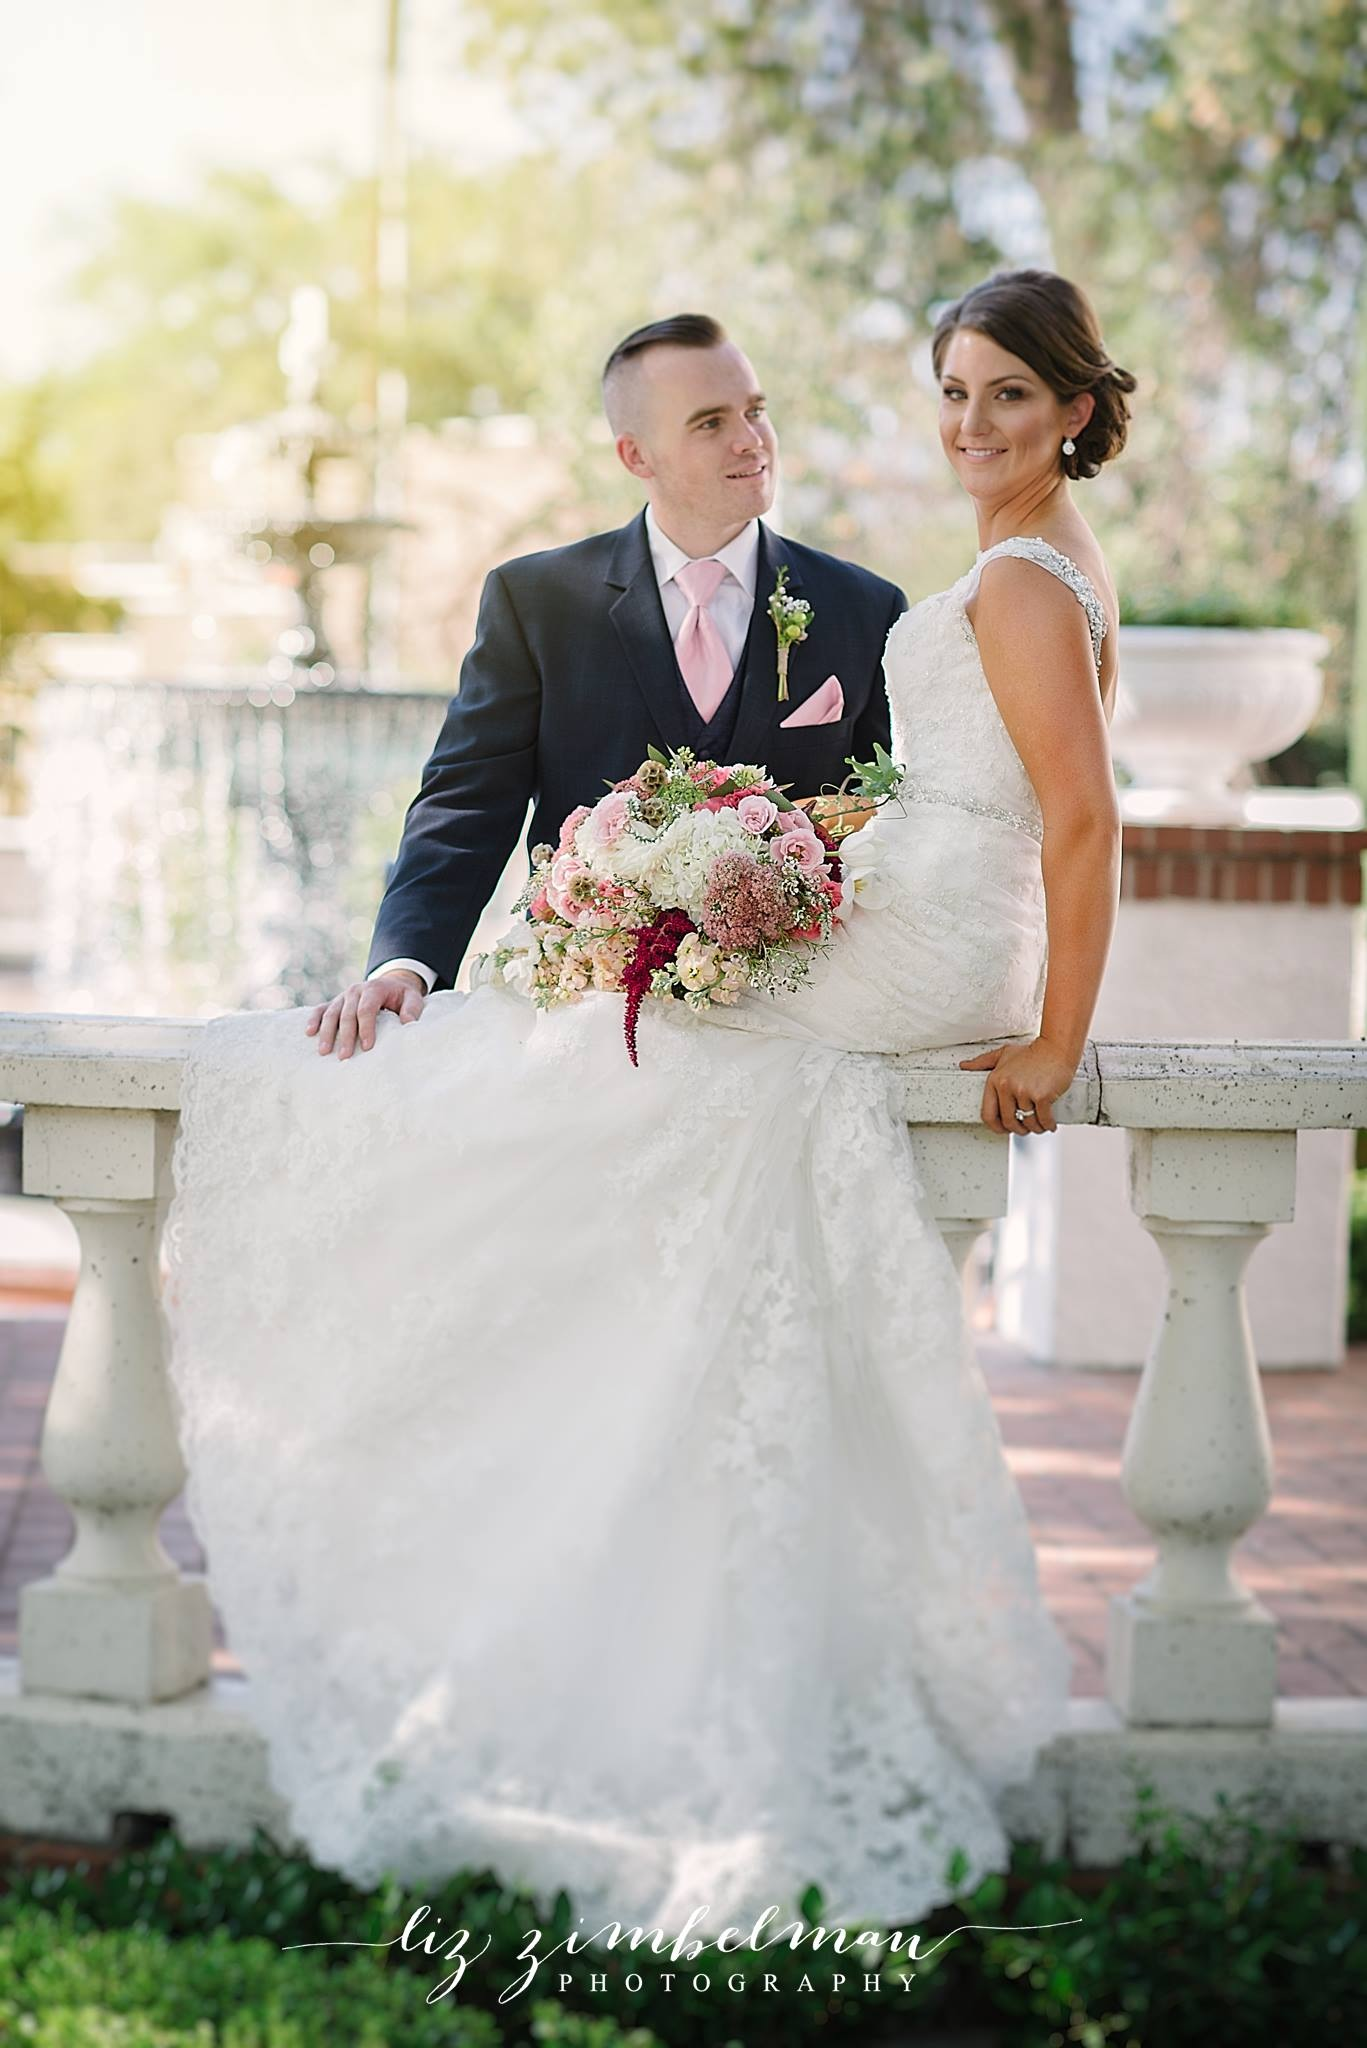 We provided the floral designs for this beautiful photo shoot at Vizcaya Sacramento. Photo courtesy of Liz Zimbleman Photography. Aren't these two dreamy?